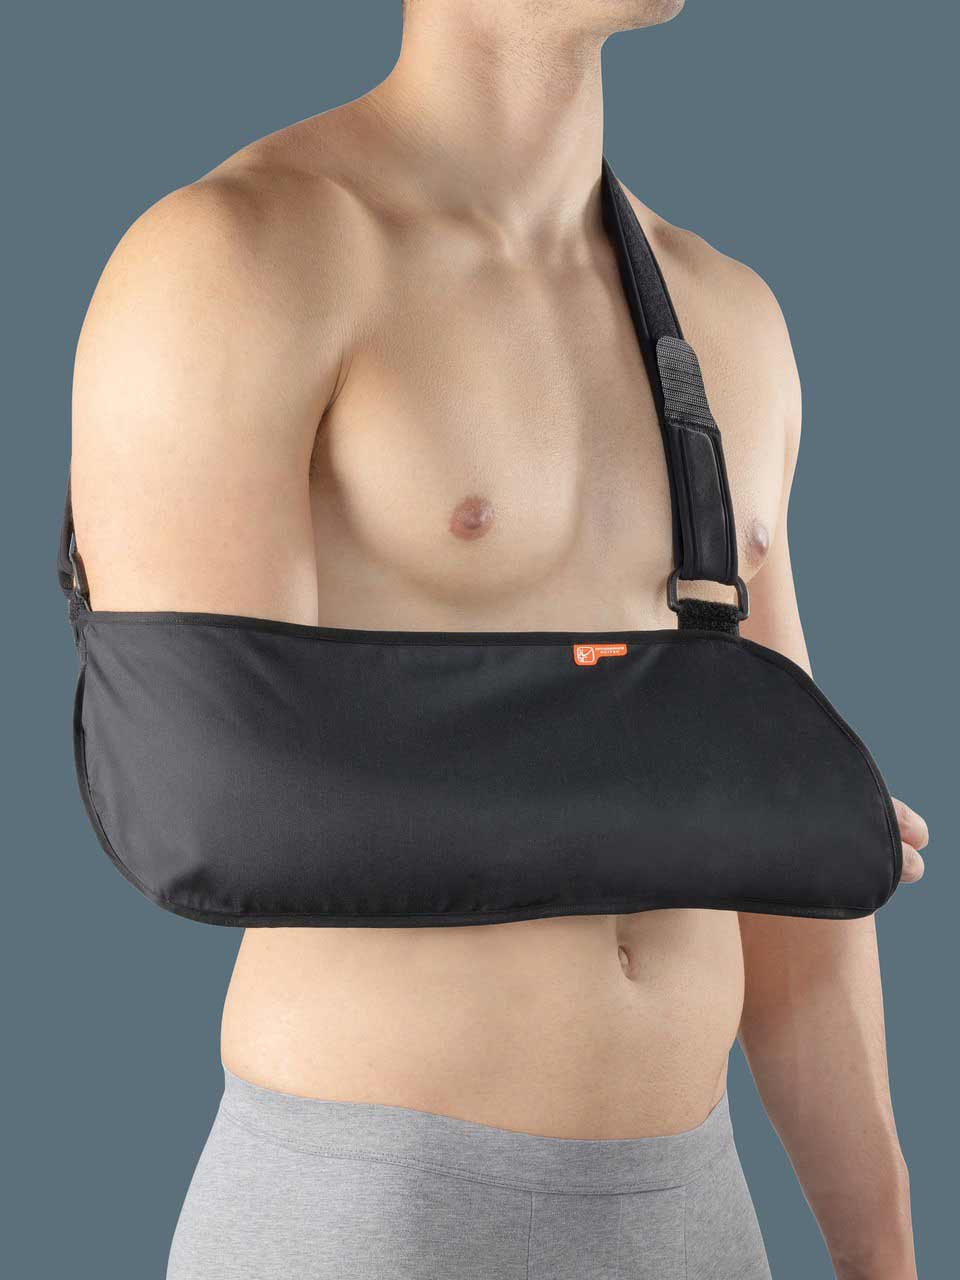 SLING-UP 2.0 - Simple arm sling